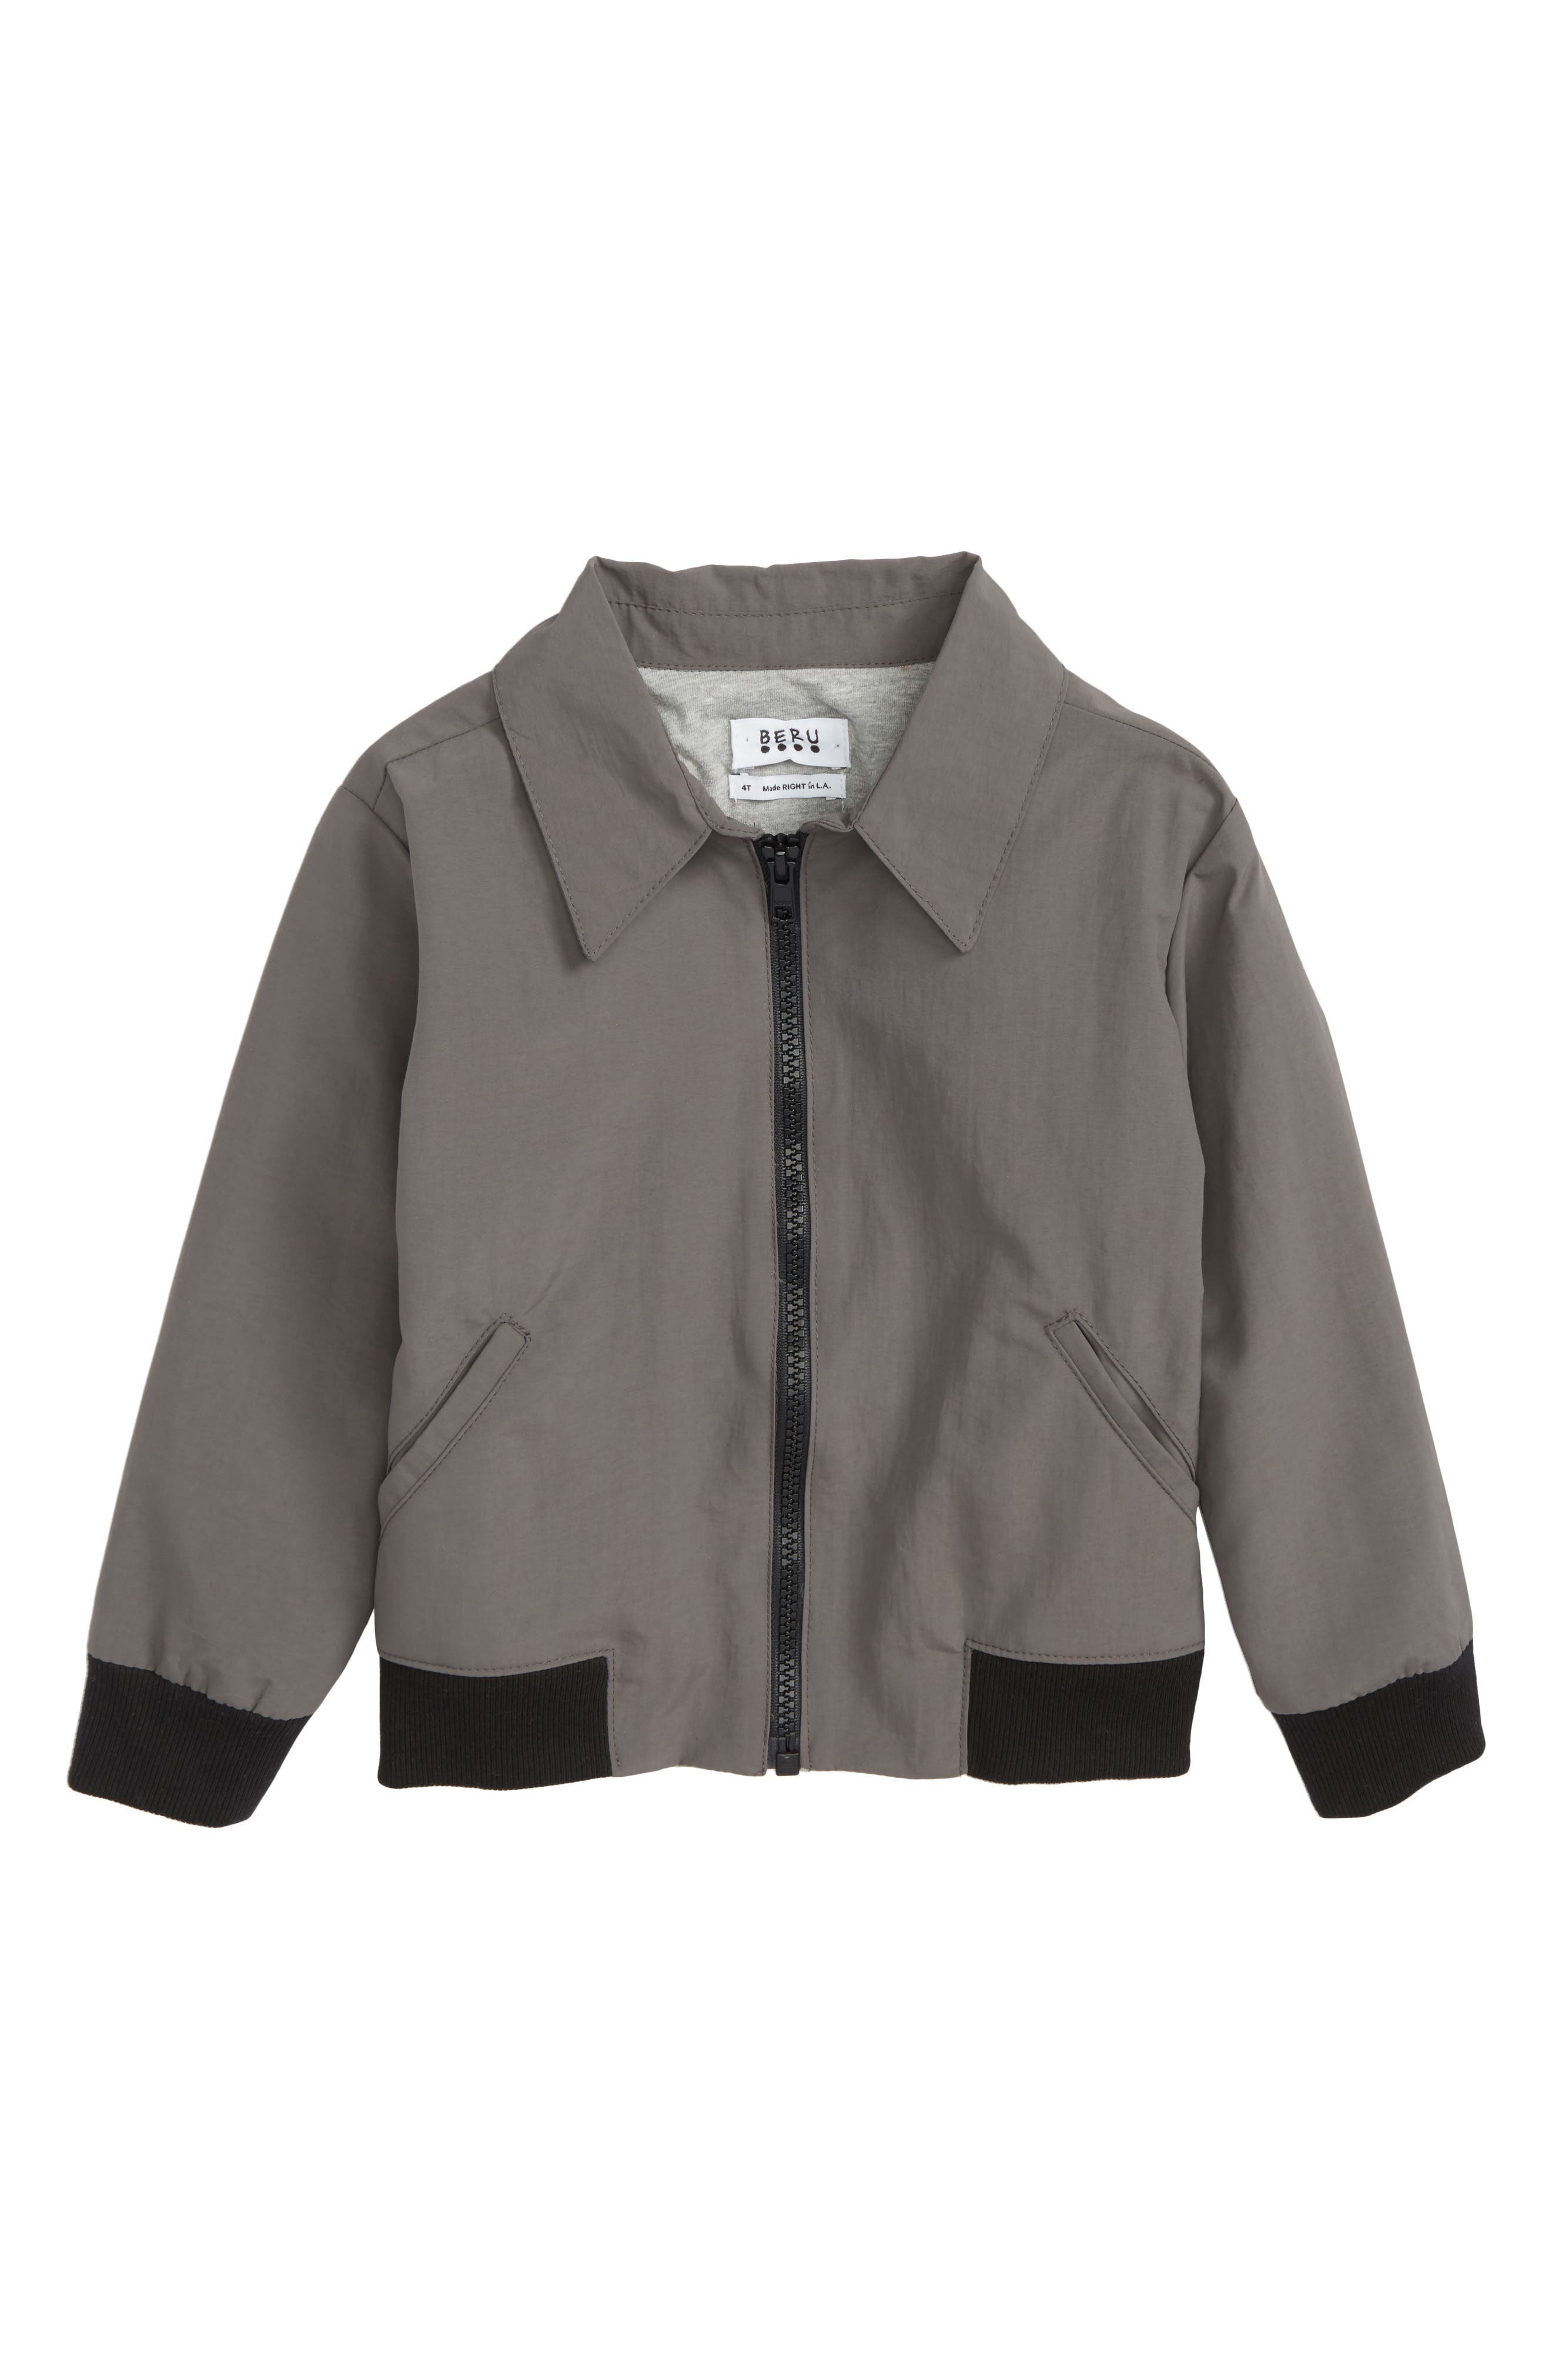 Beru Riles Jacket (Toddler Boys & Little Boys)